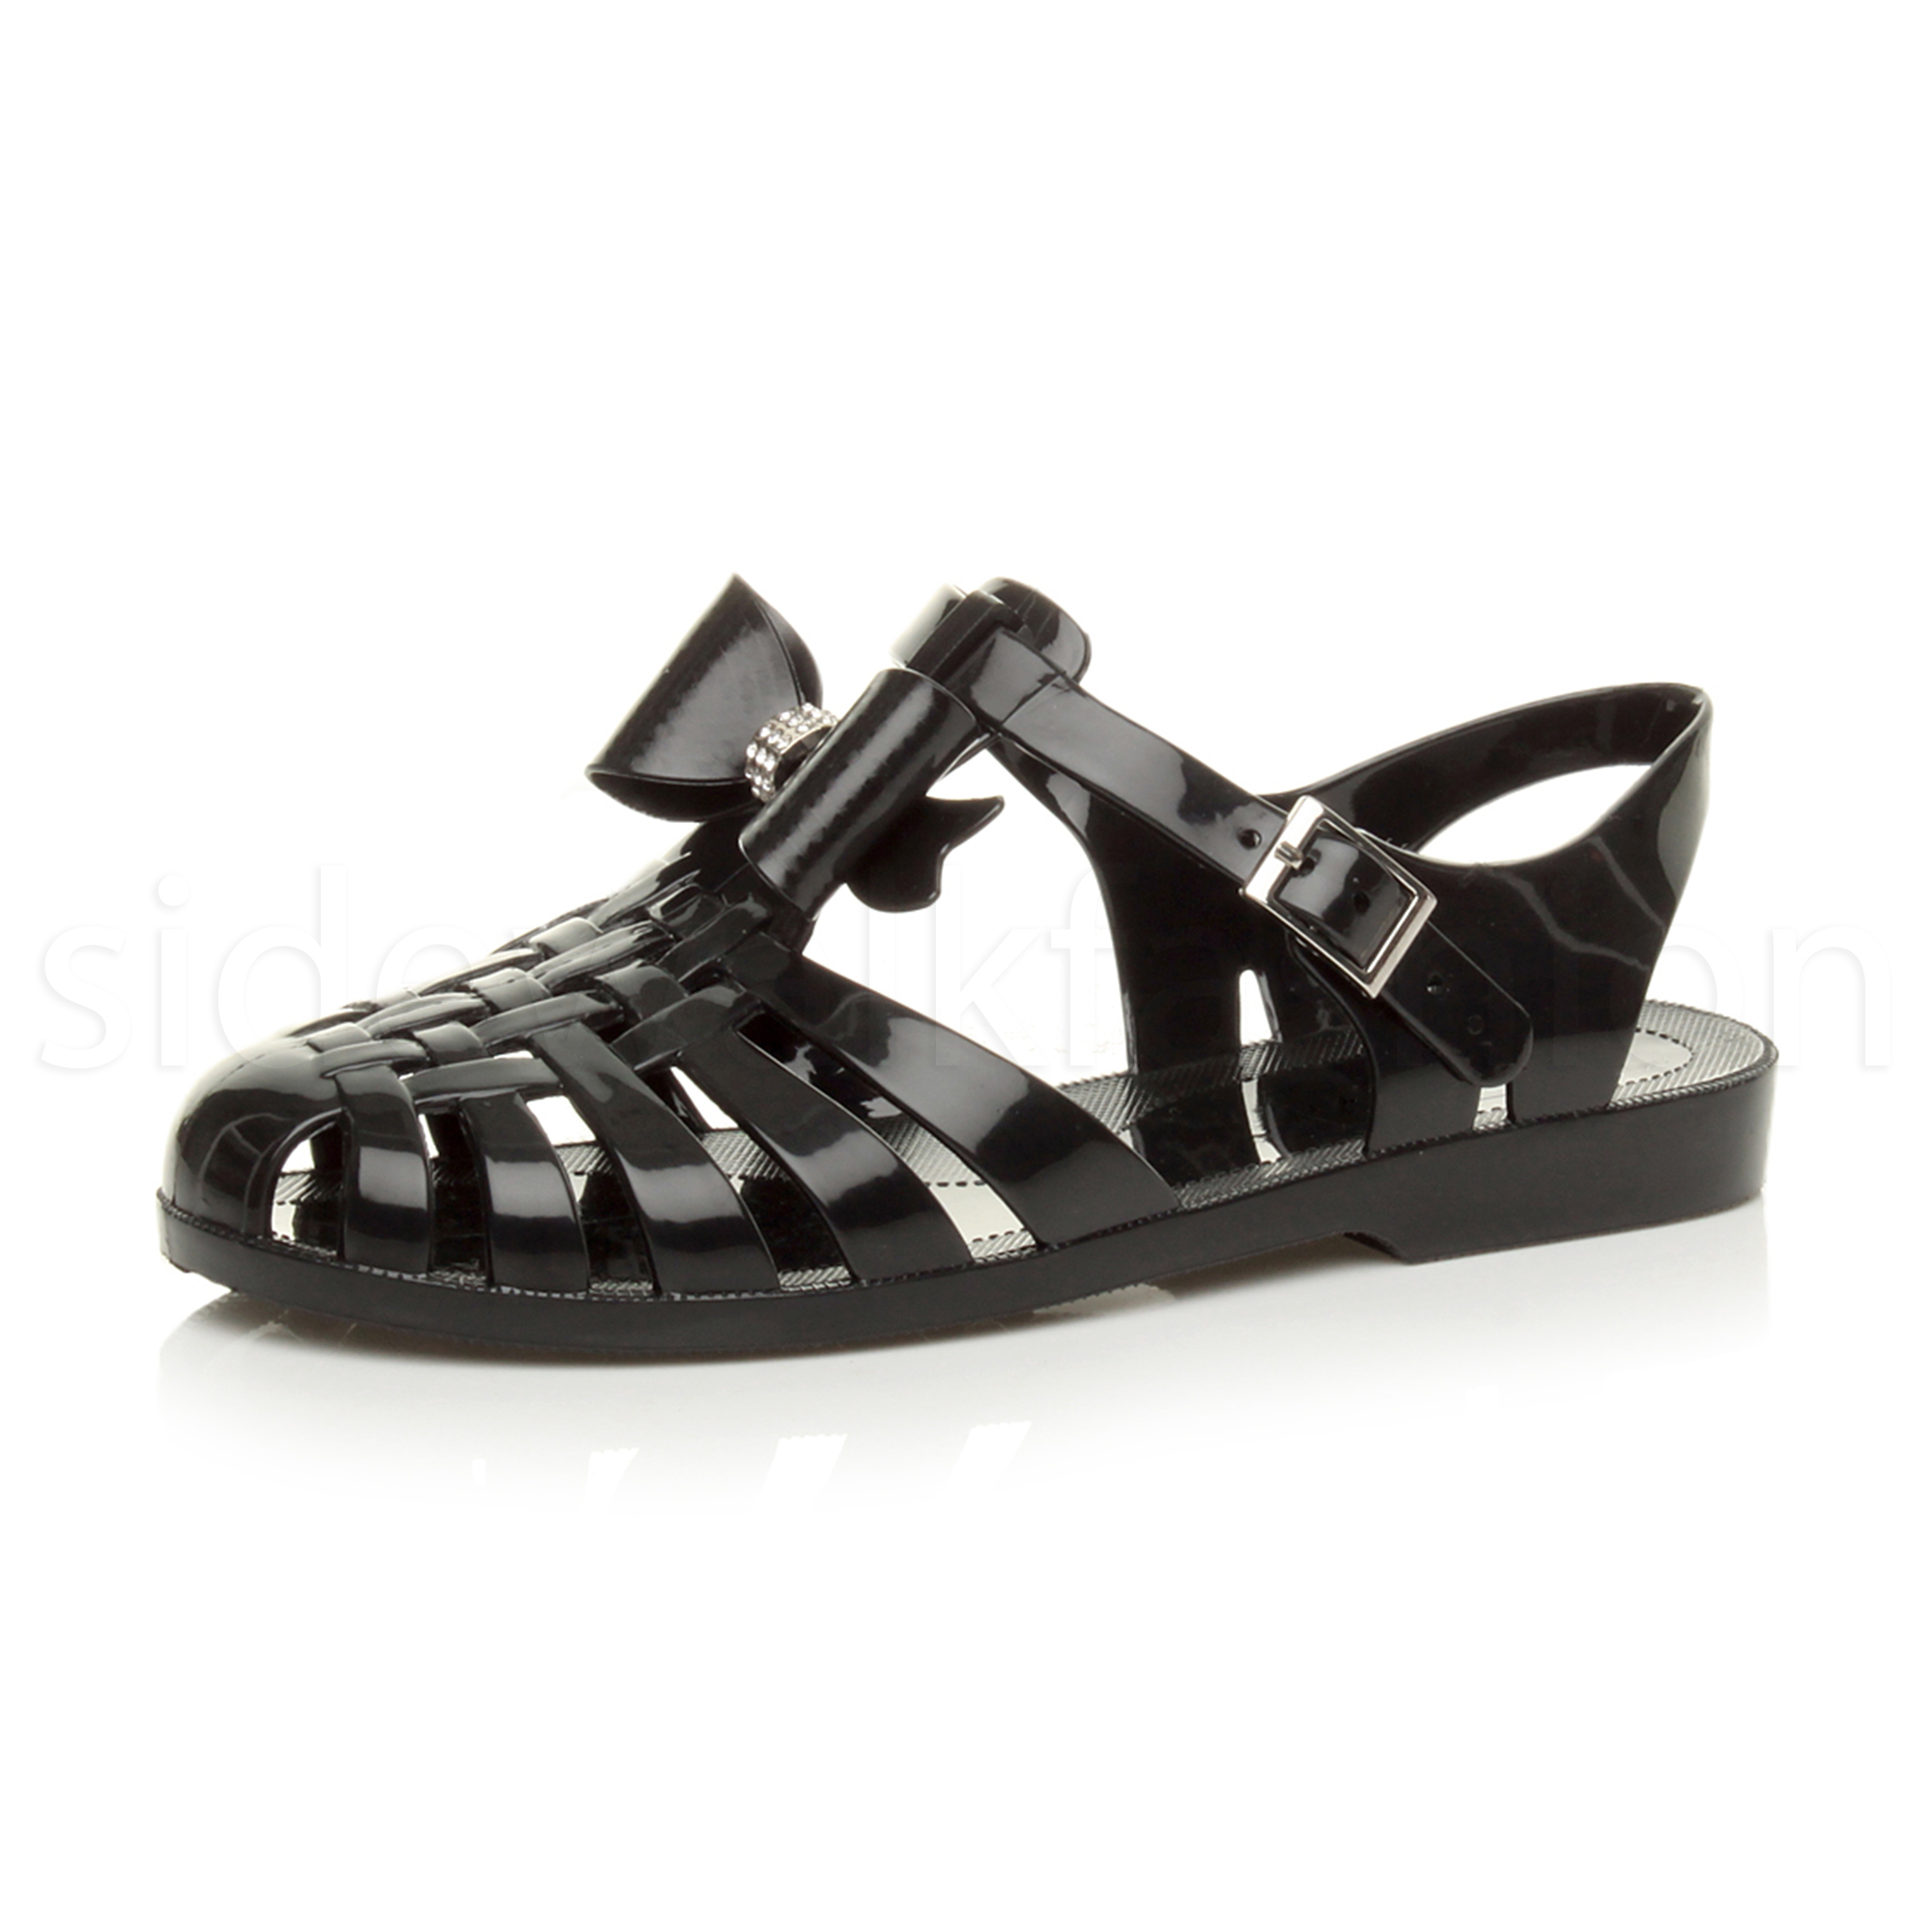 8181f97c71792 Womens Girls Kids Flat Bow Gladiator Strappy Jelly Summer Sandals Shoes Size  UK 6   EU 39   US 8 Black. About this product. Picture 1 of 9  Picture 2 of  9 ...